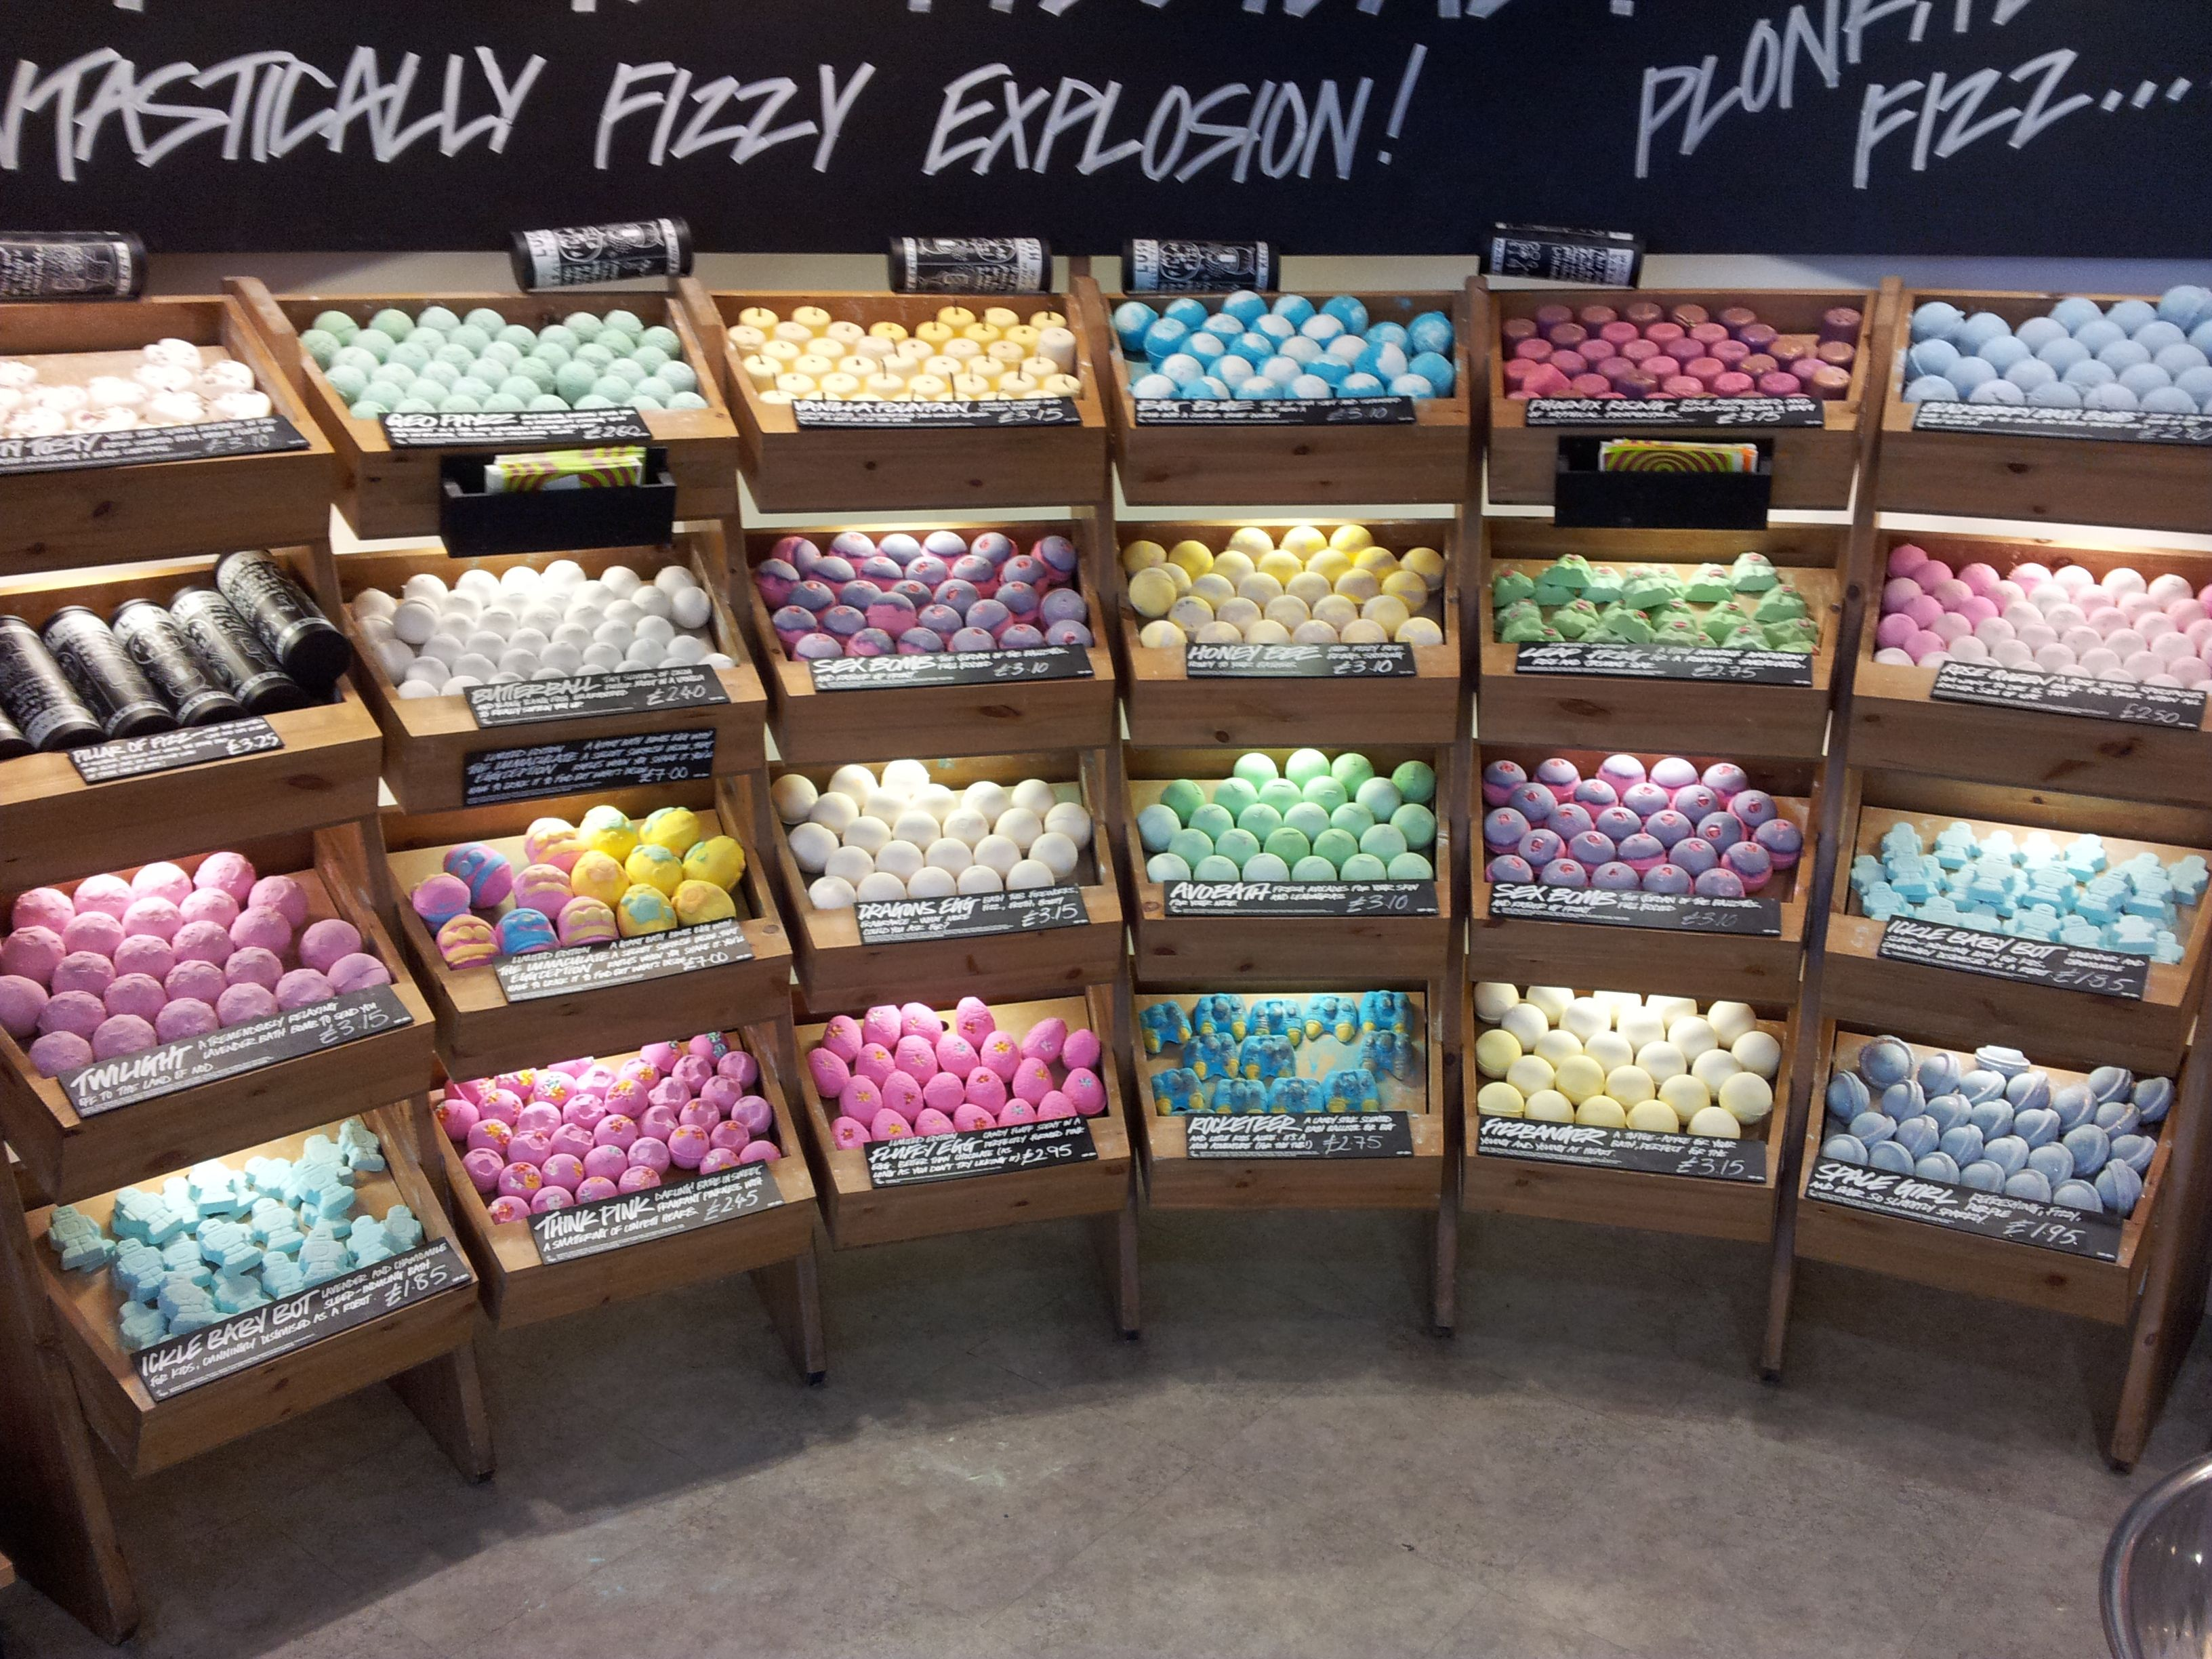 Shopping for Mothers Day, found this great display of bath bombs ...